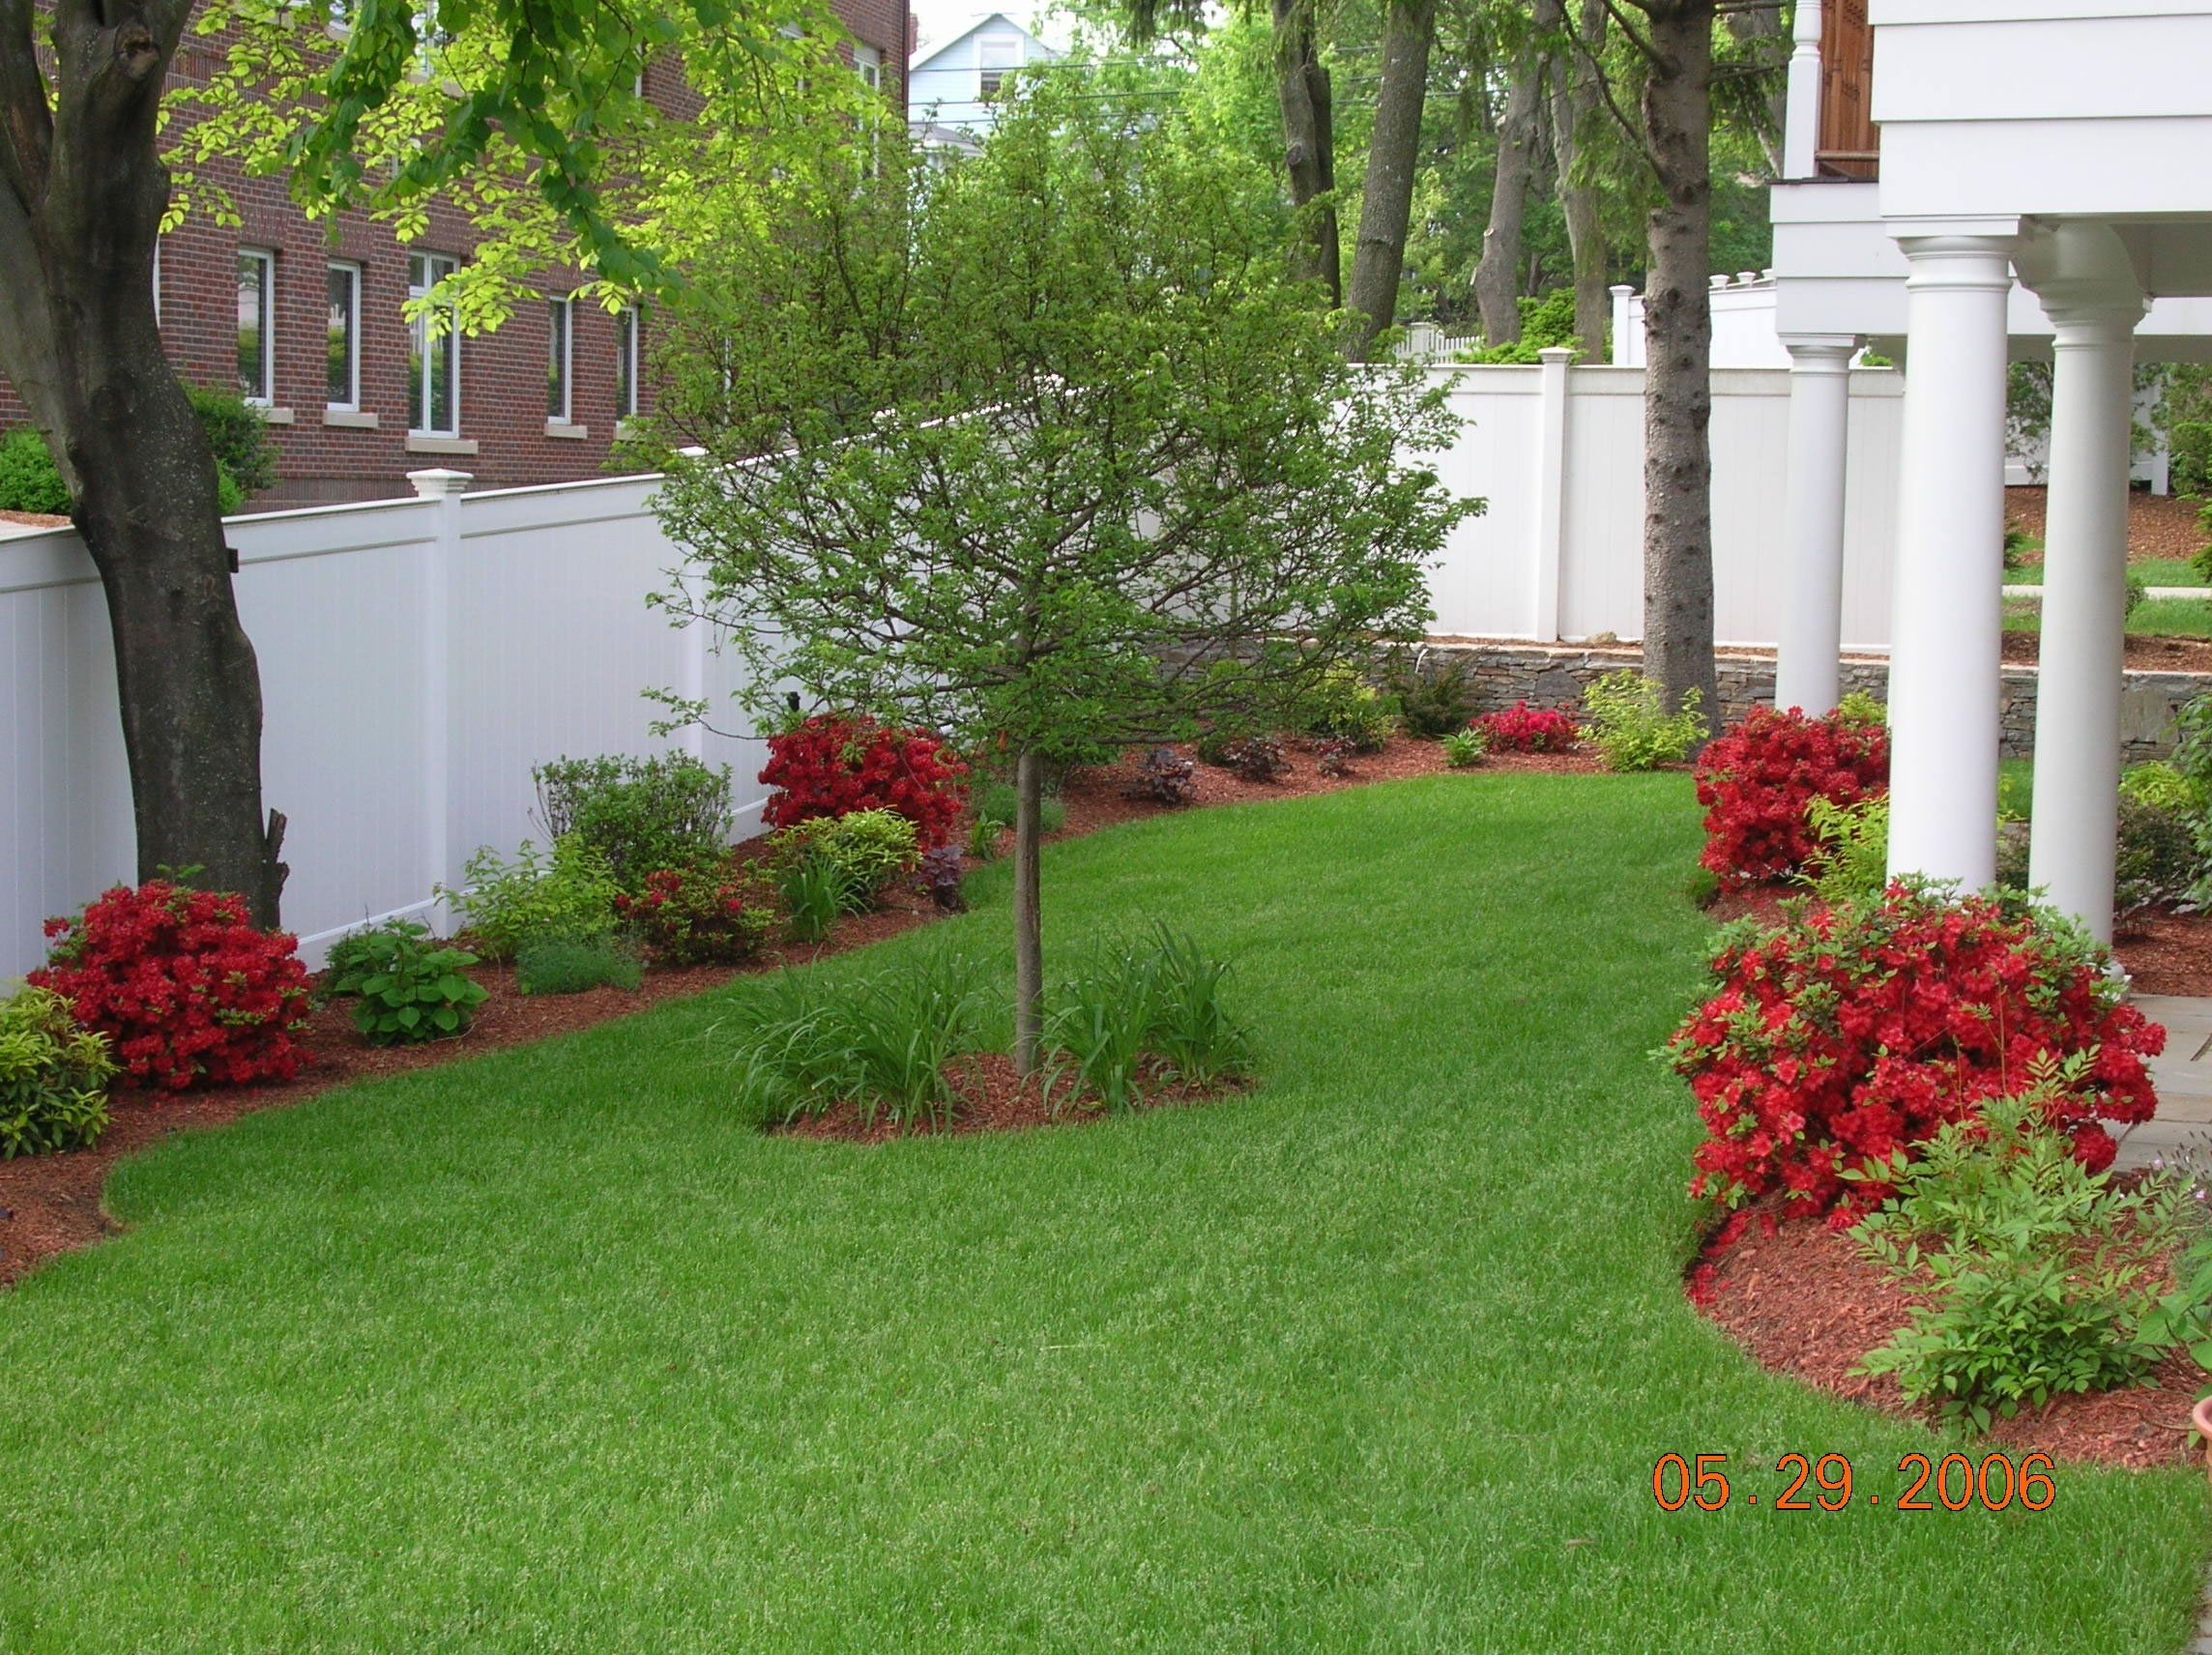 Top 10 simple diy landscaping ideas seek diy for Easy garden design ideas